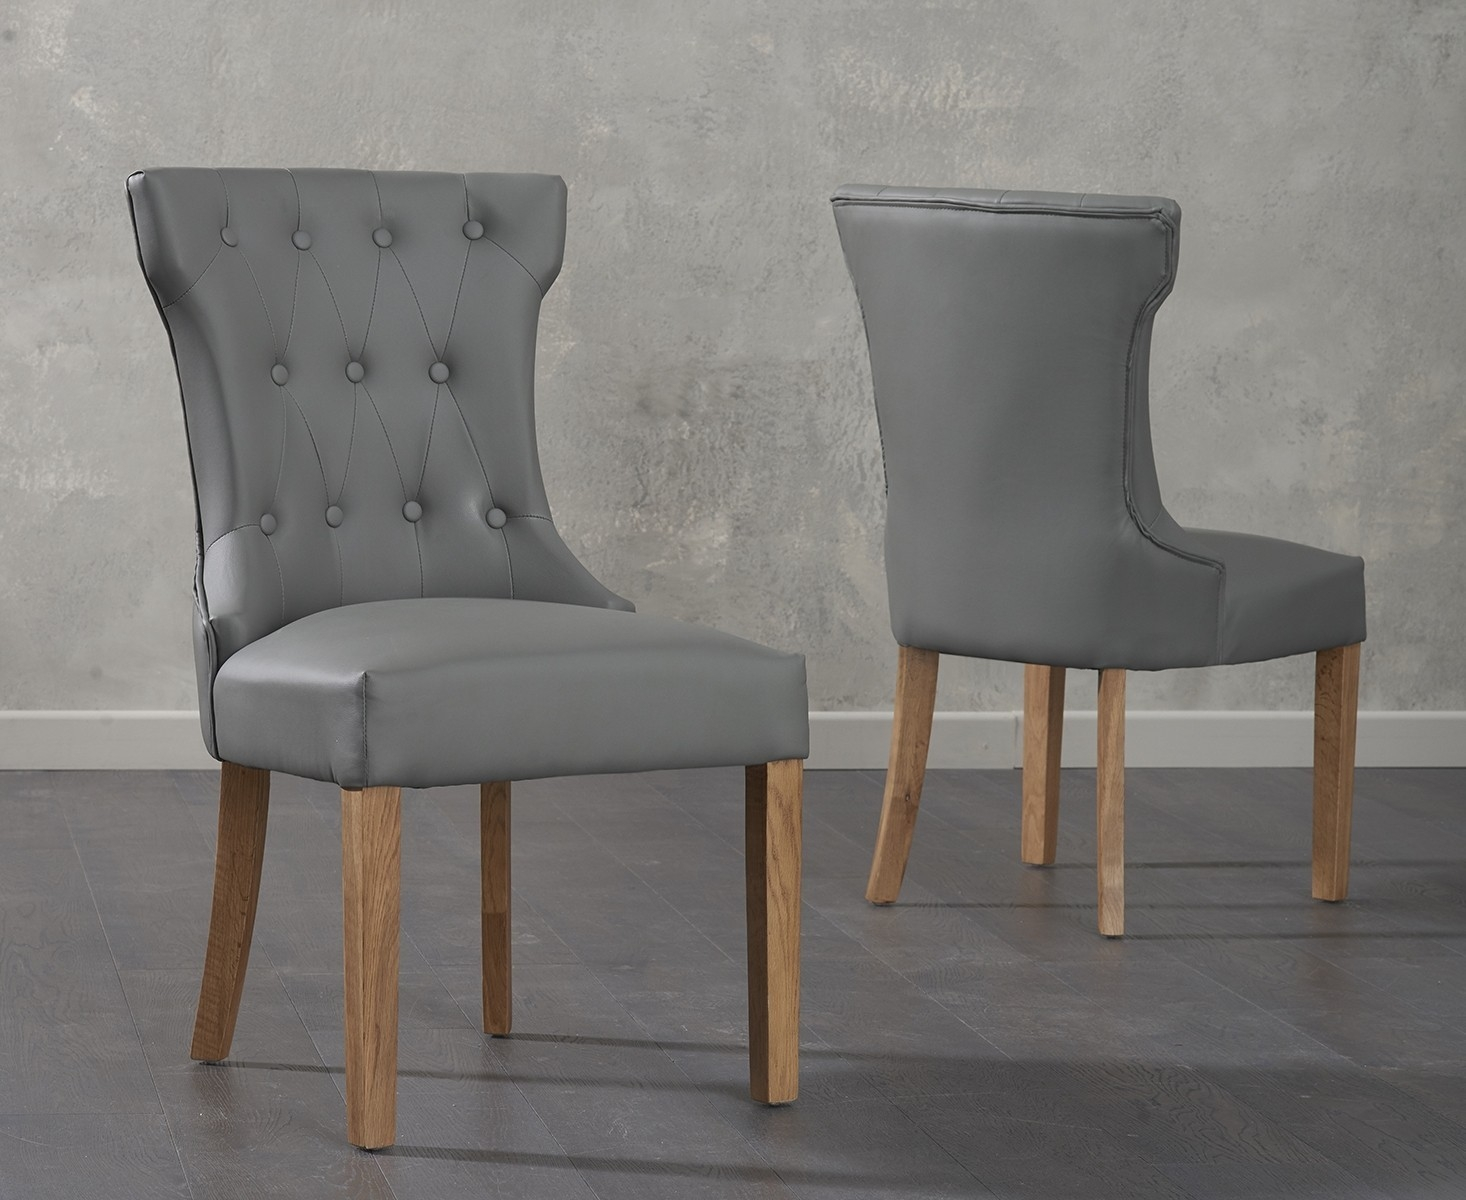 Wondrous Mark Harris Courtney Grey Faux Leather Dining Chair Pair Unemploymentrelief Wooden Chair Designs For Living Room Unemploymentrelieforg